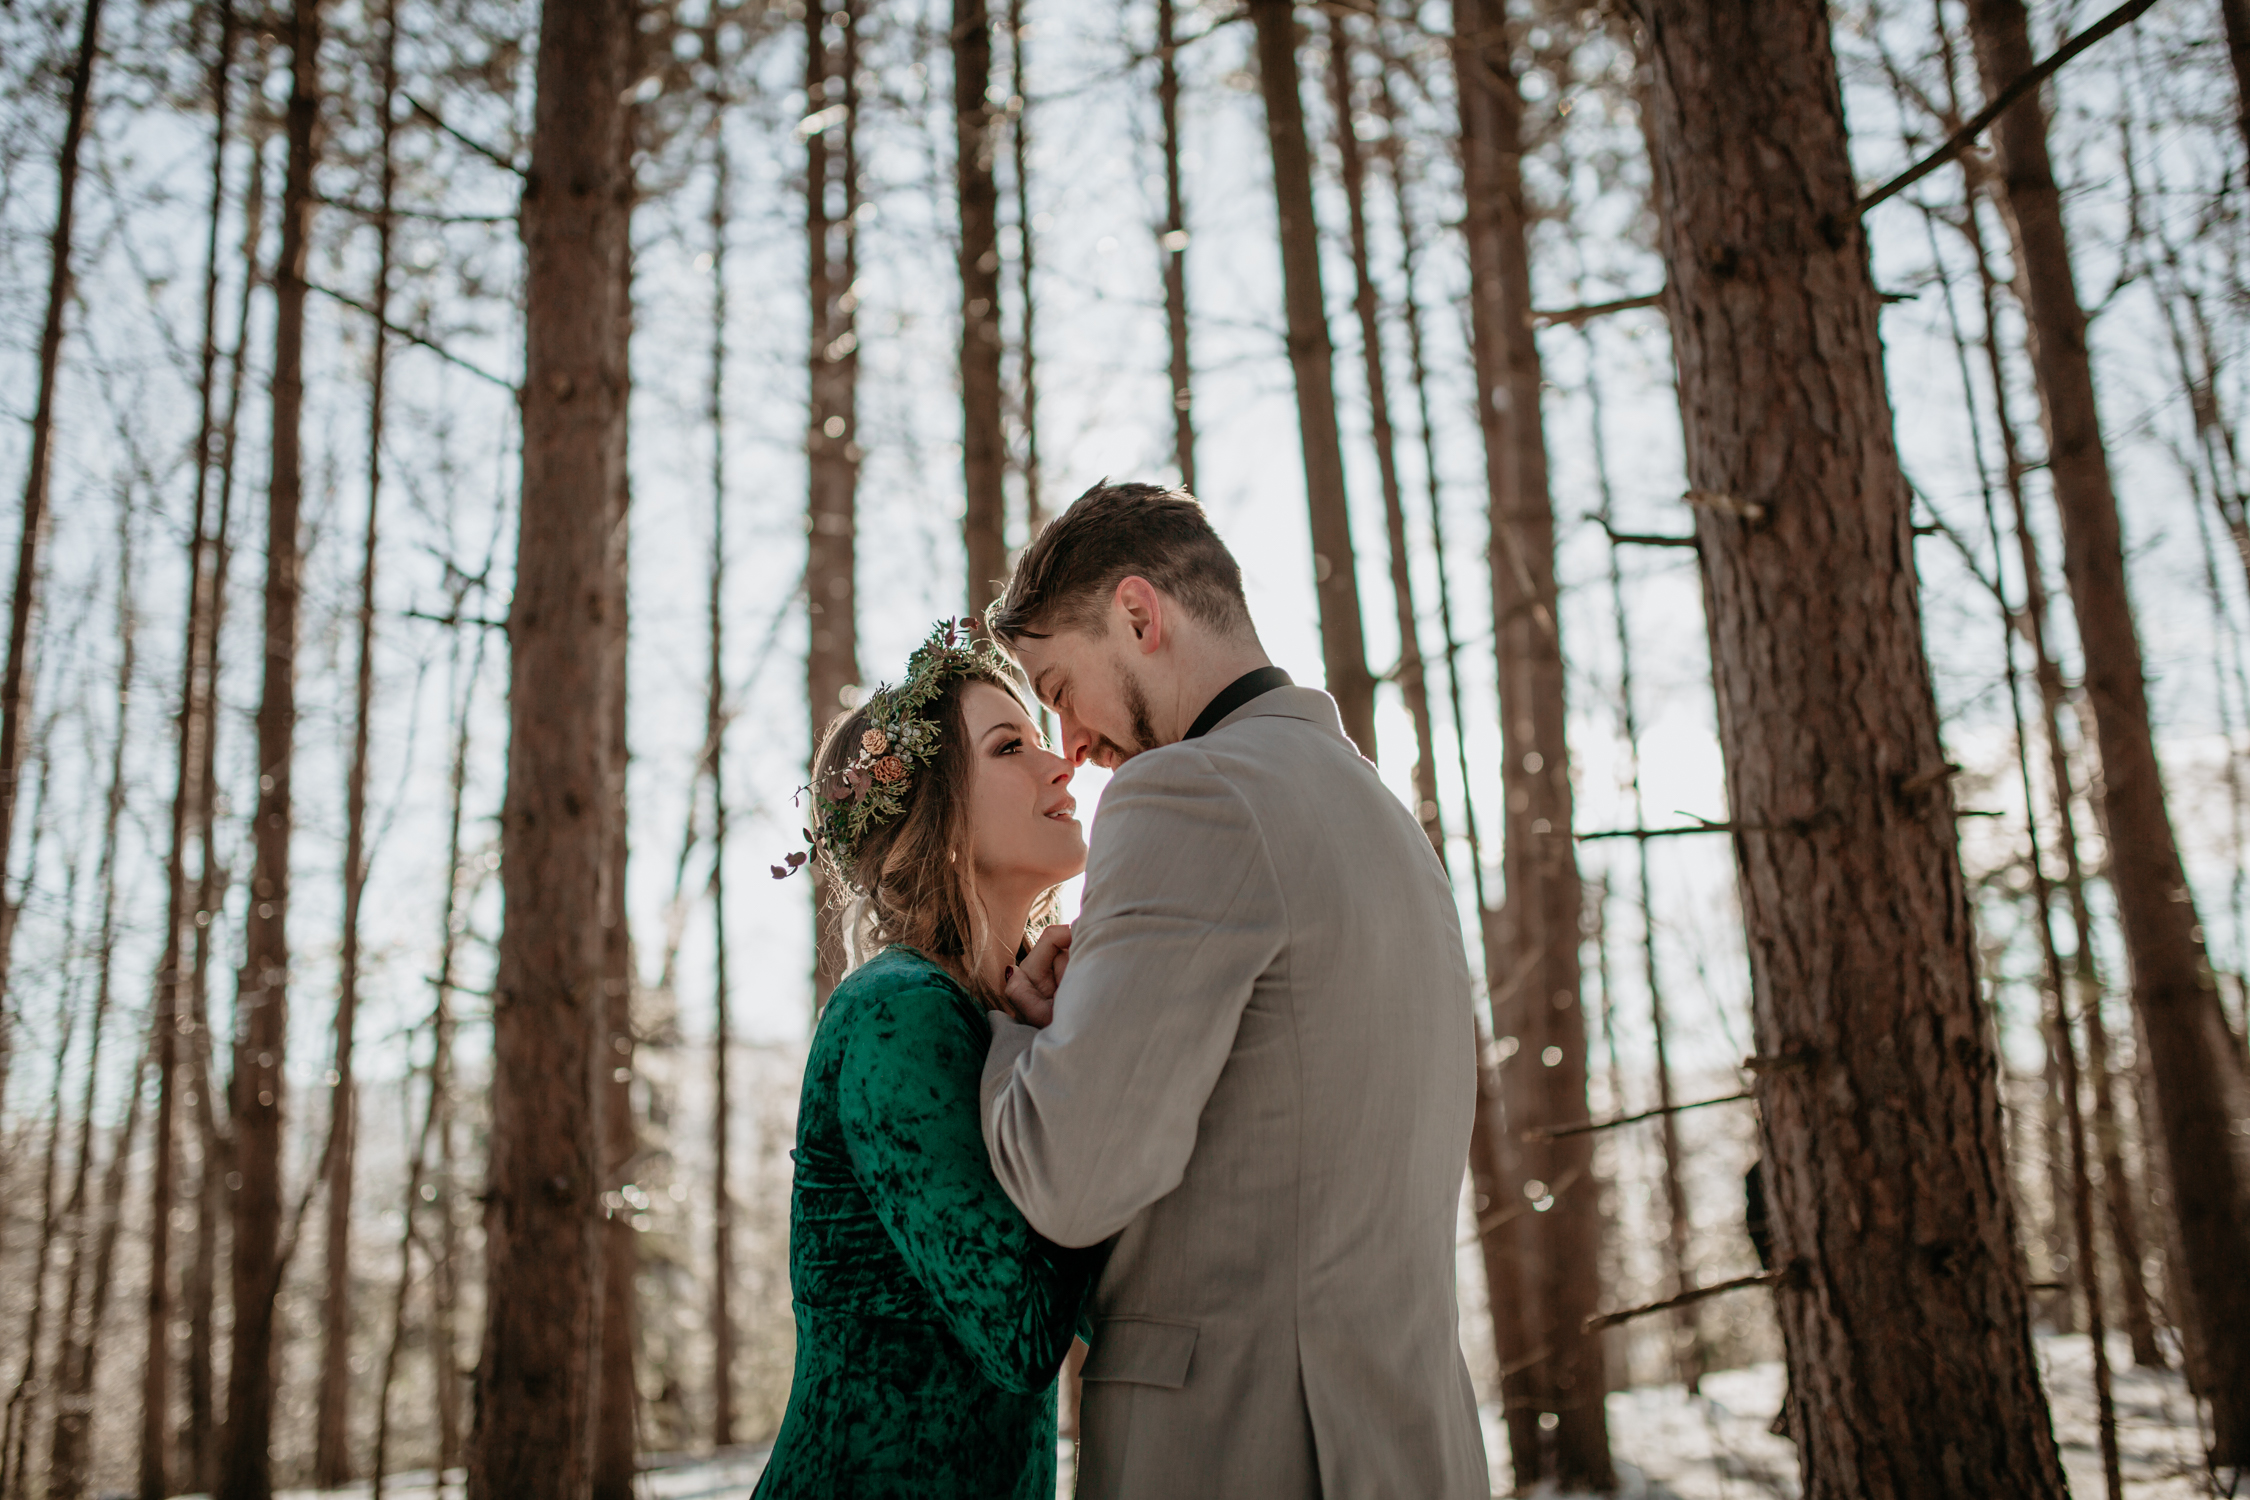 Julie & Nick | Styled Winter Wedding - Red Hook, NY